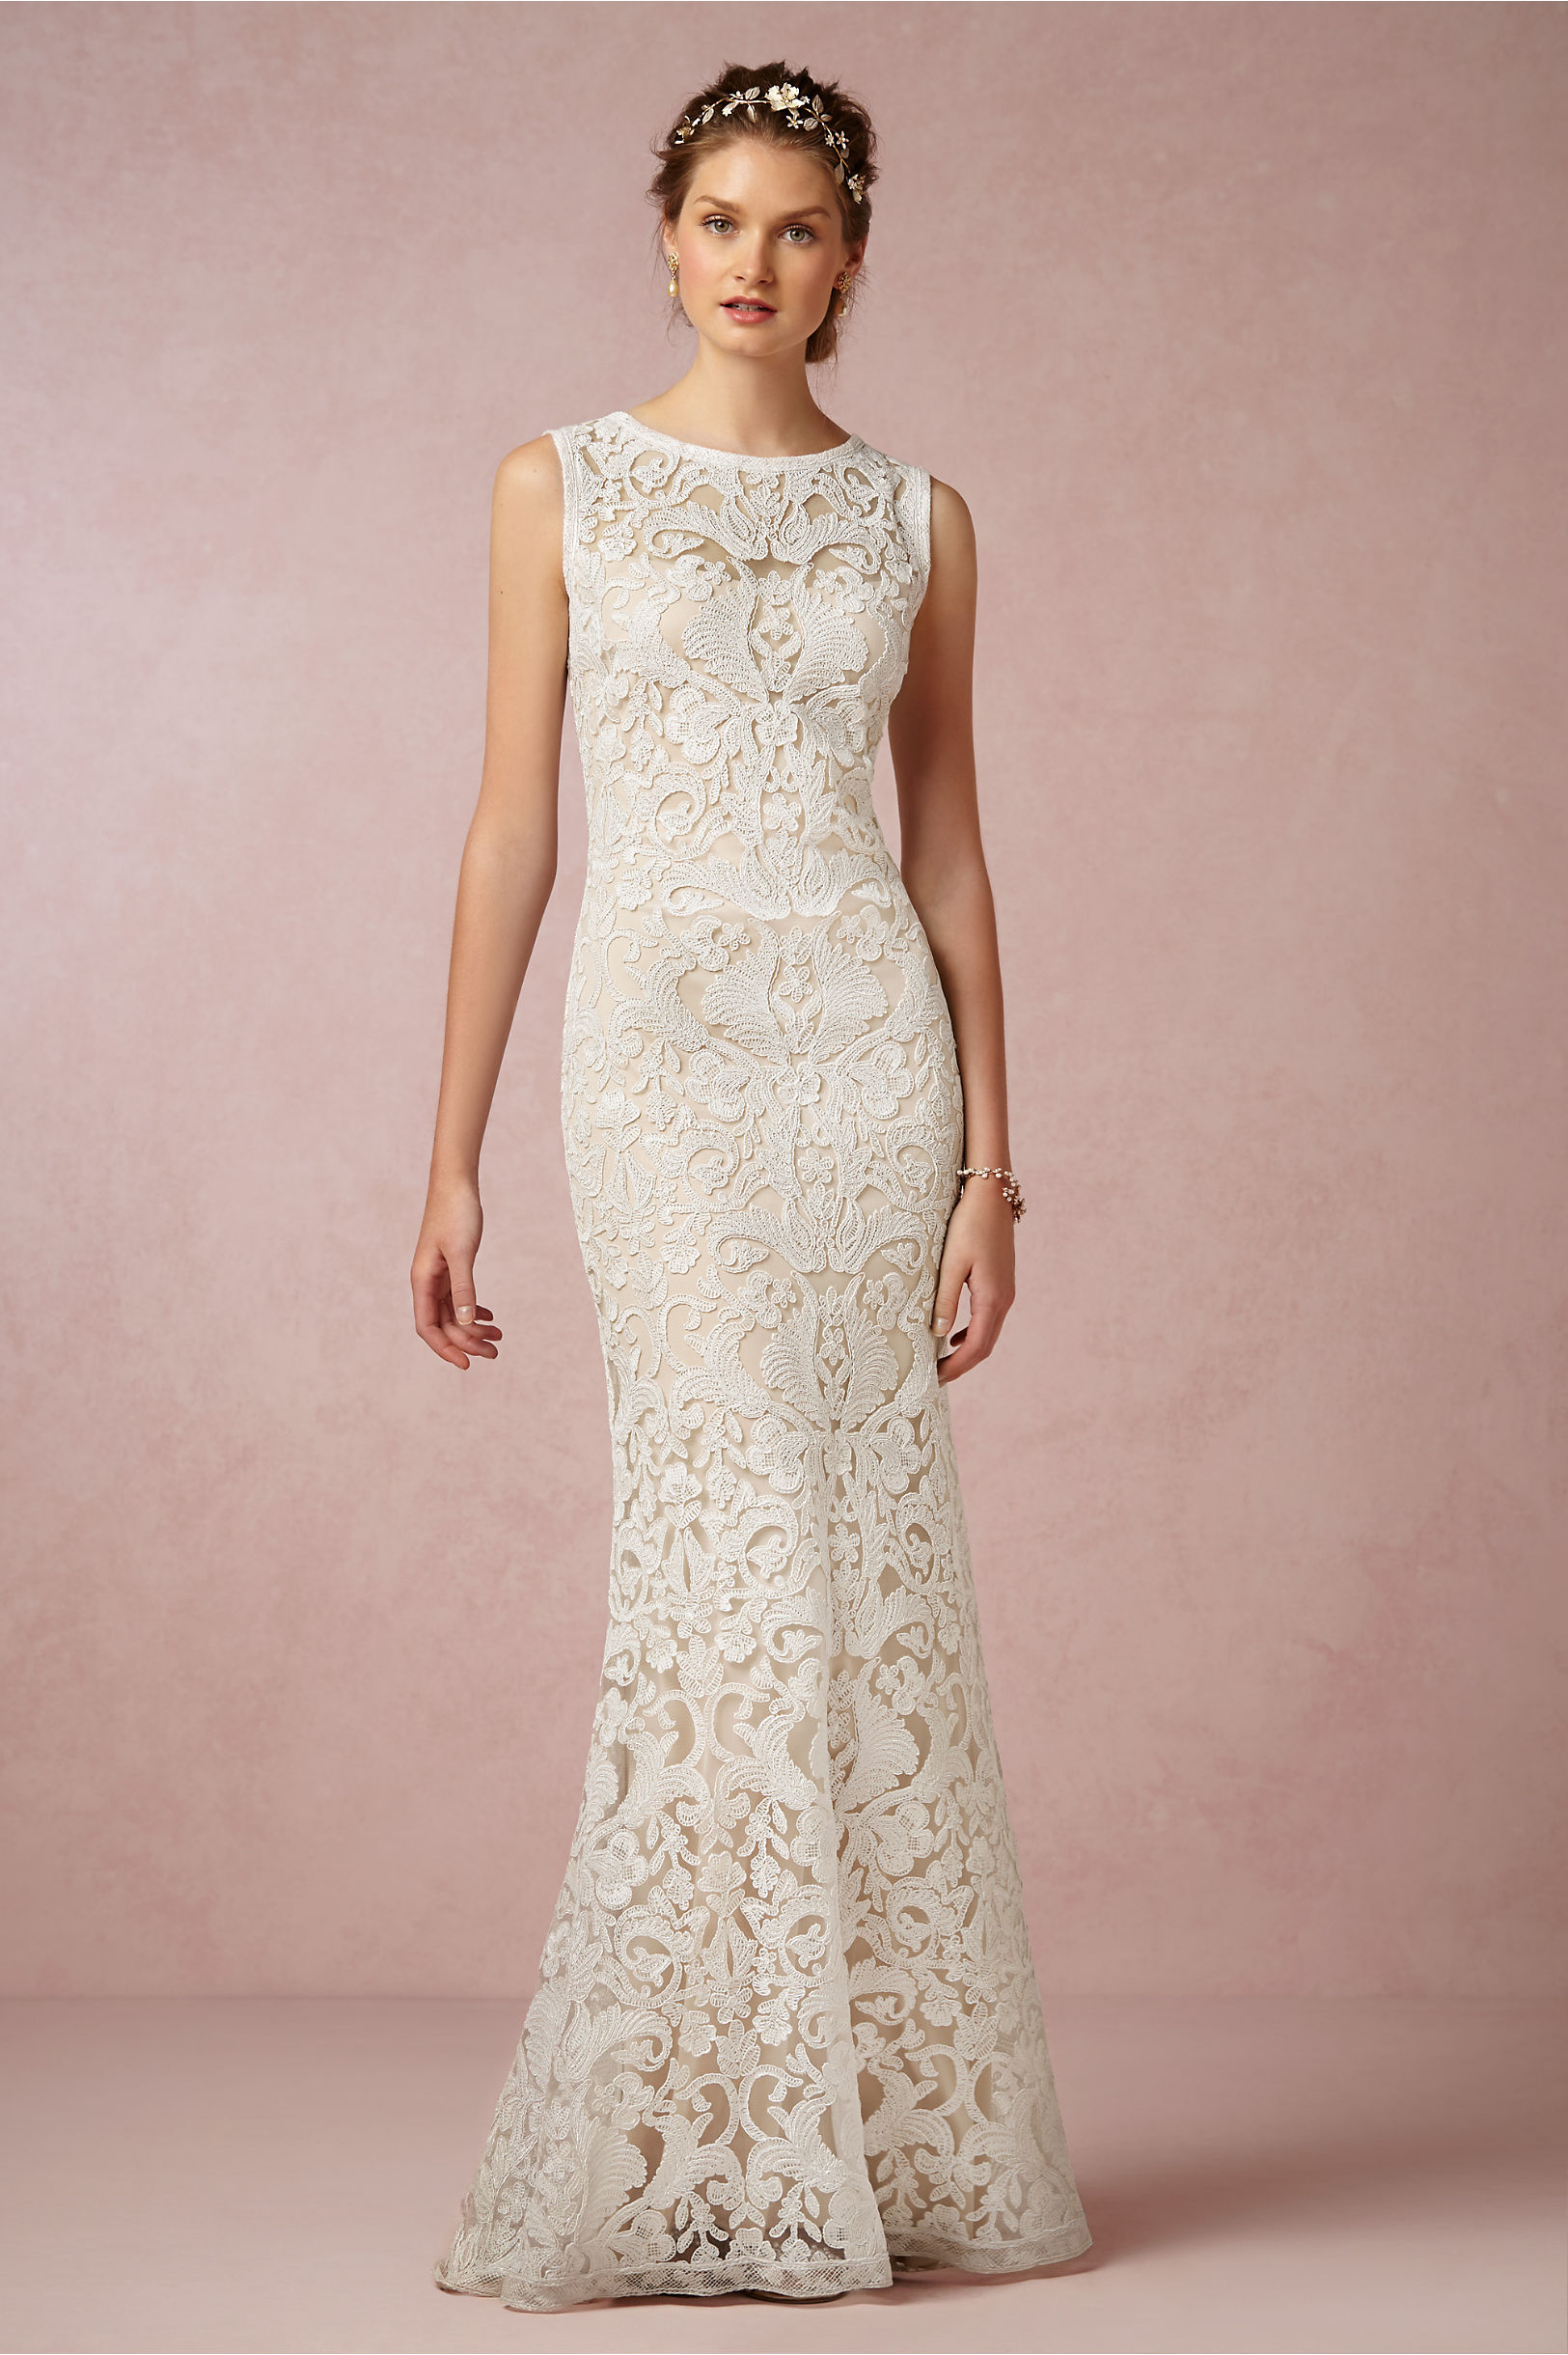 Help! Is this the dress for me?